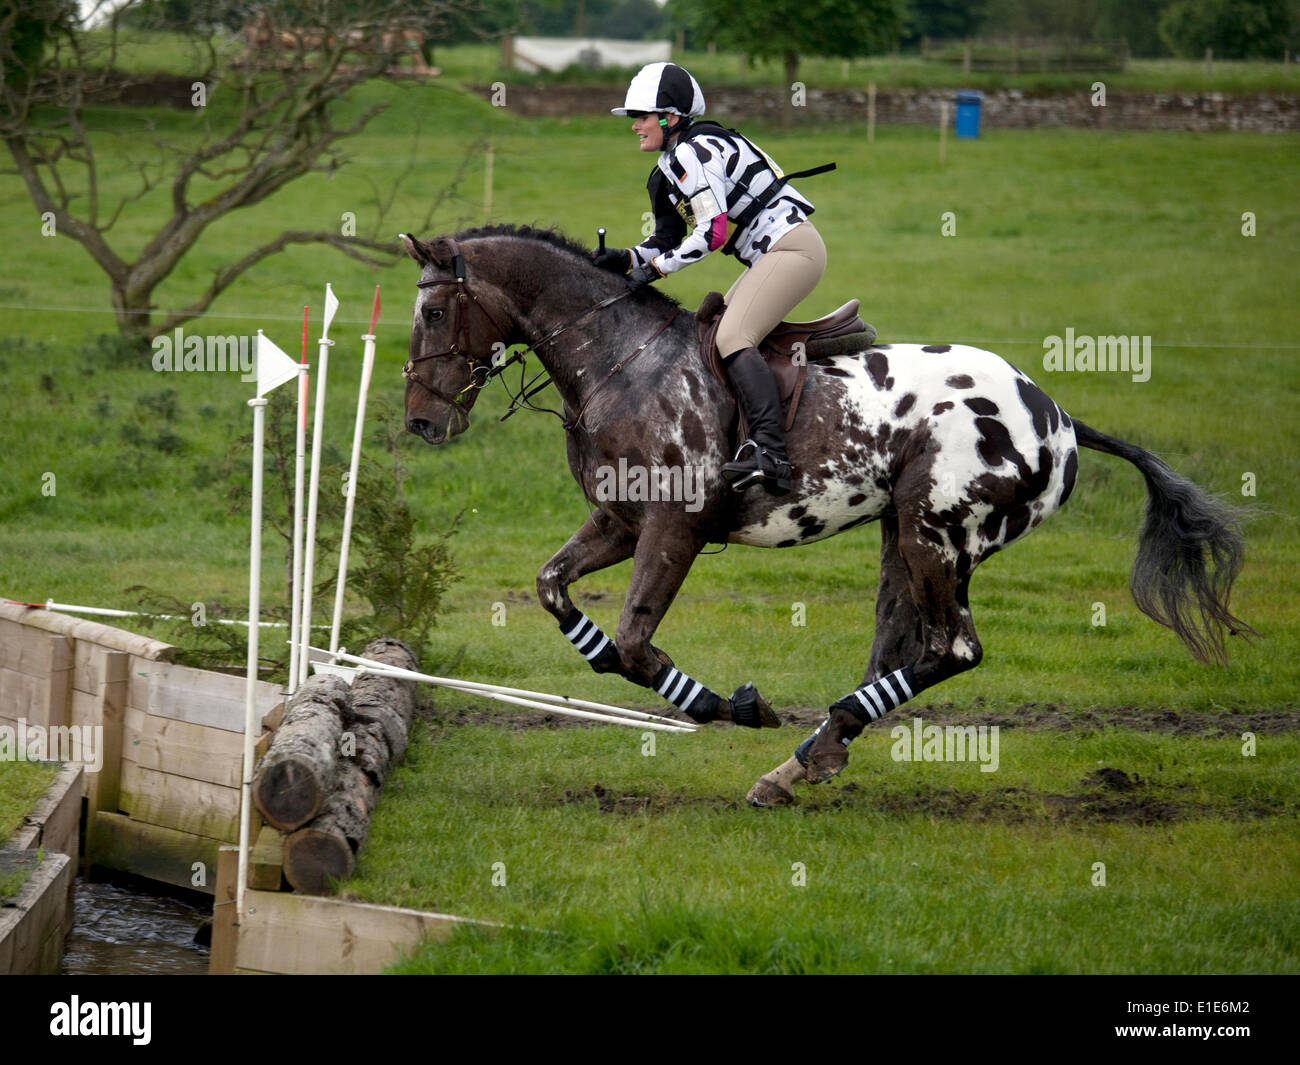 Belsay, UK. 01st June, 2014. A competitor in the cross country section jumping the open ditch during day two of the 2014 Belsay Horse Trials, held for the second year running in the grounds of Belsay Castle in Northumberland, England. Belsay Castle is managed by English Heritage and is open to the public all year. Credit:  AC Images/Alamy Live News - Stock Image